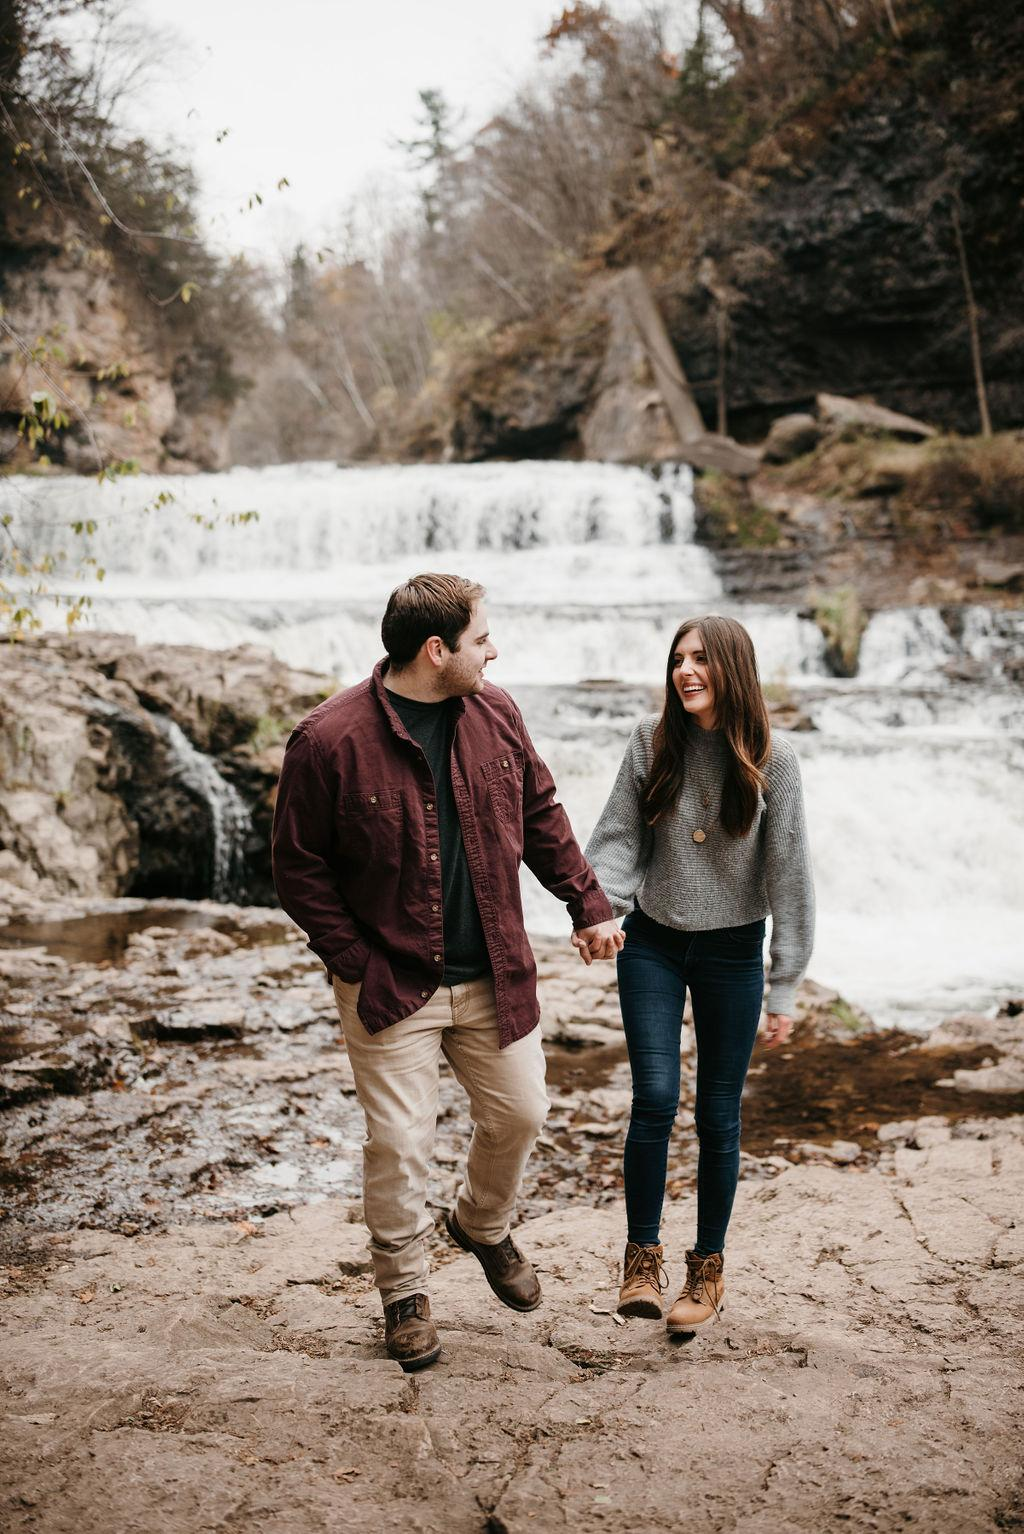 Morgan and Garrett are holding hands and walking in front of a waterfall and cliffs.